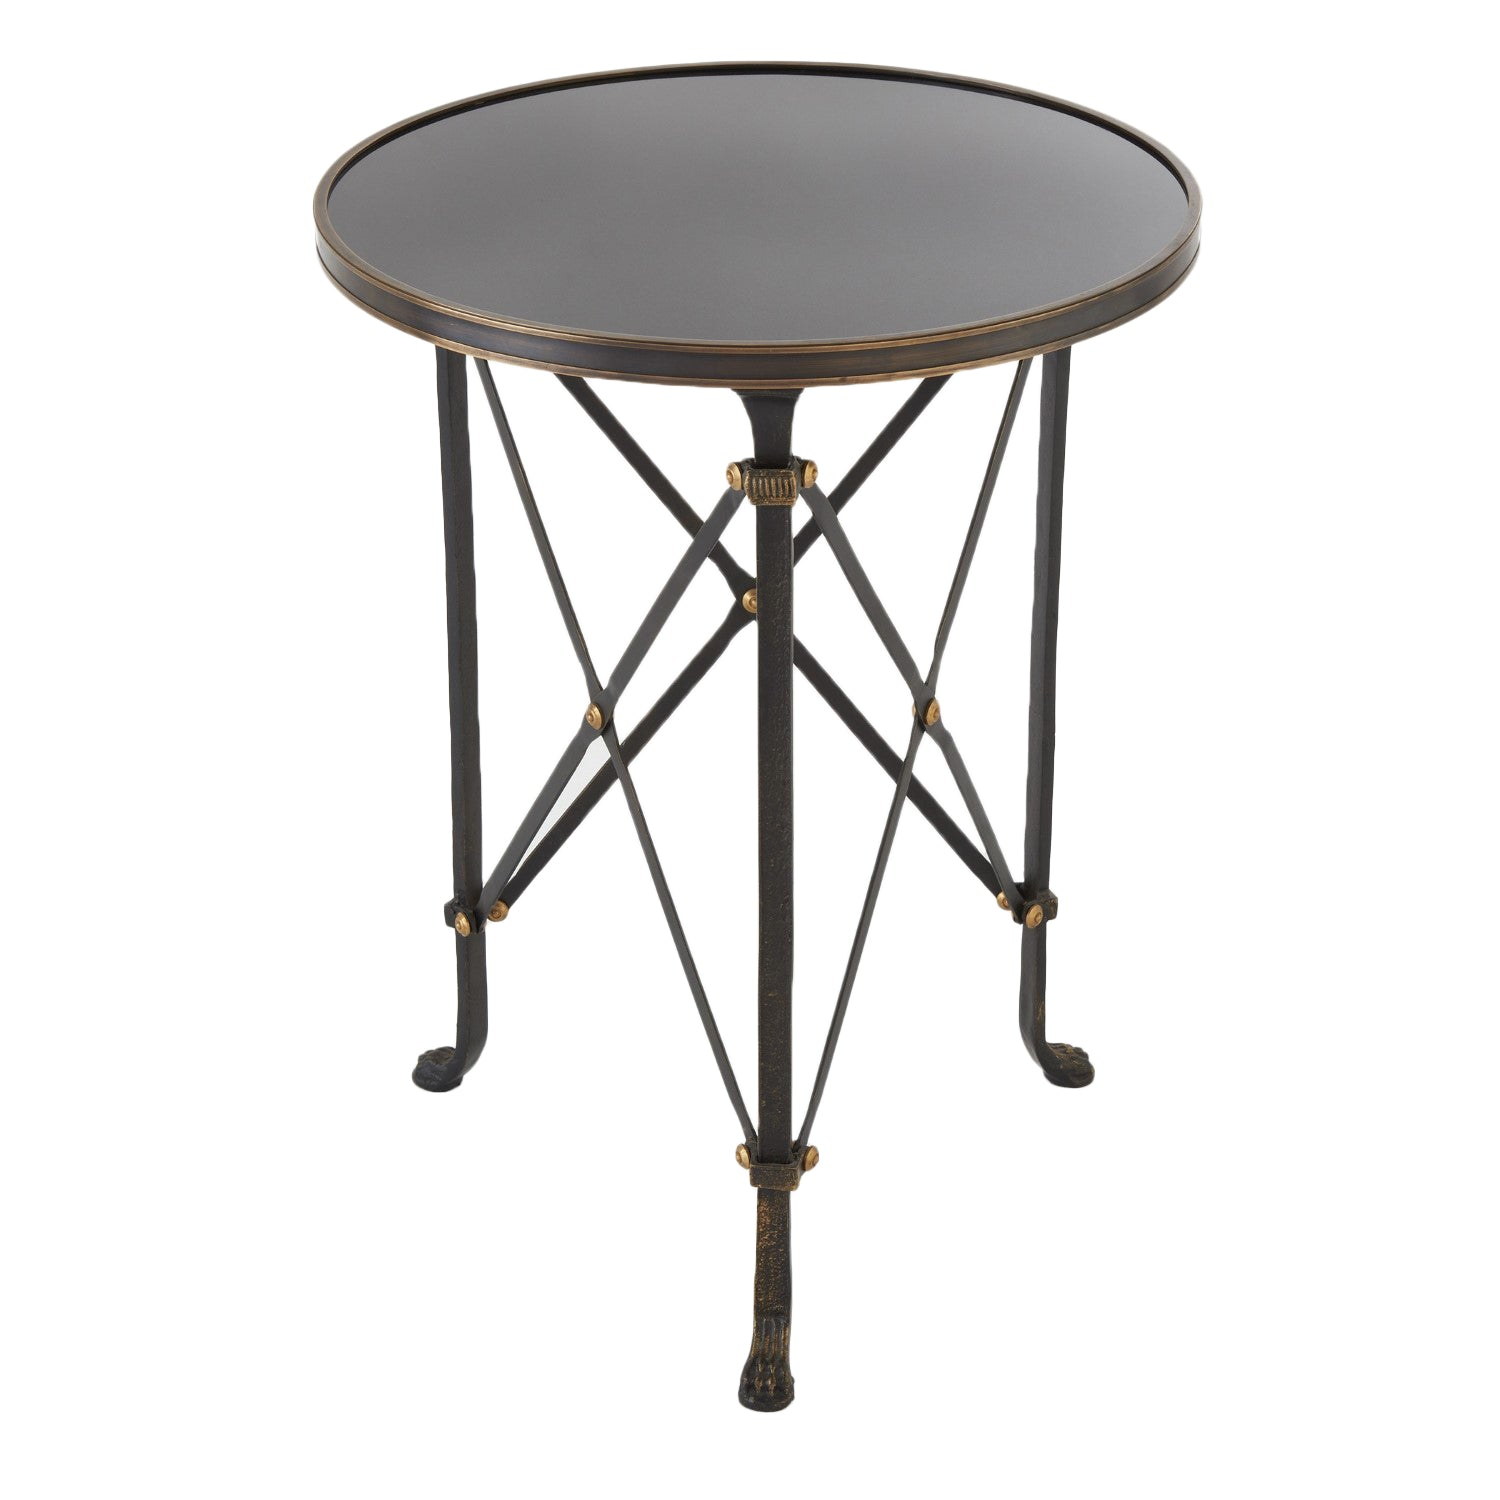 Black French Iron Table - Amy Berry Home